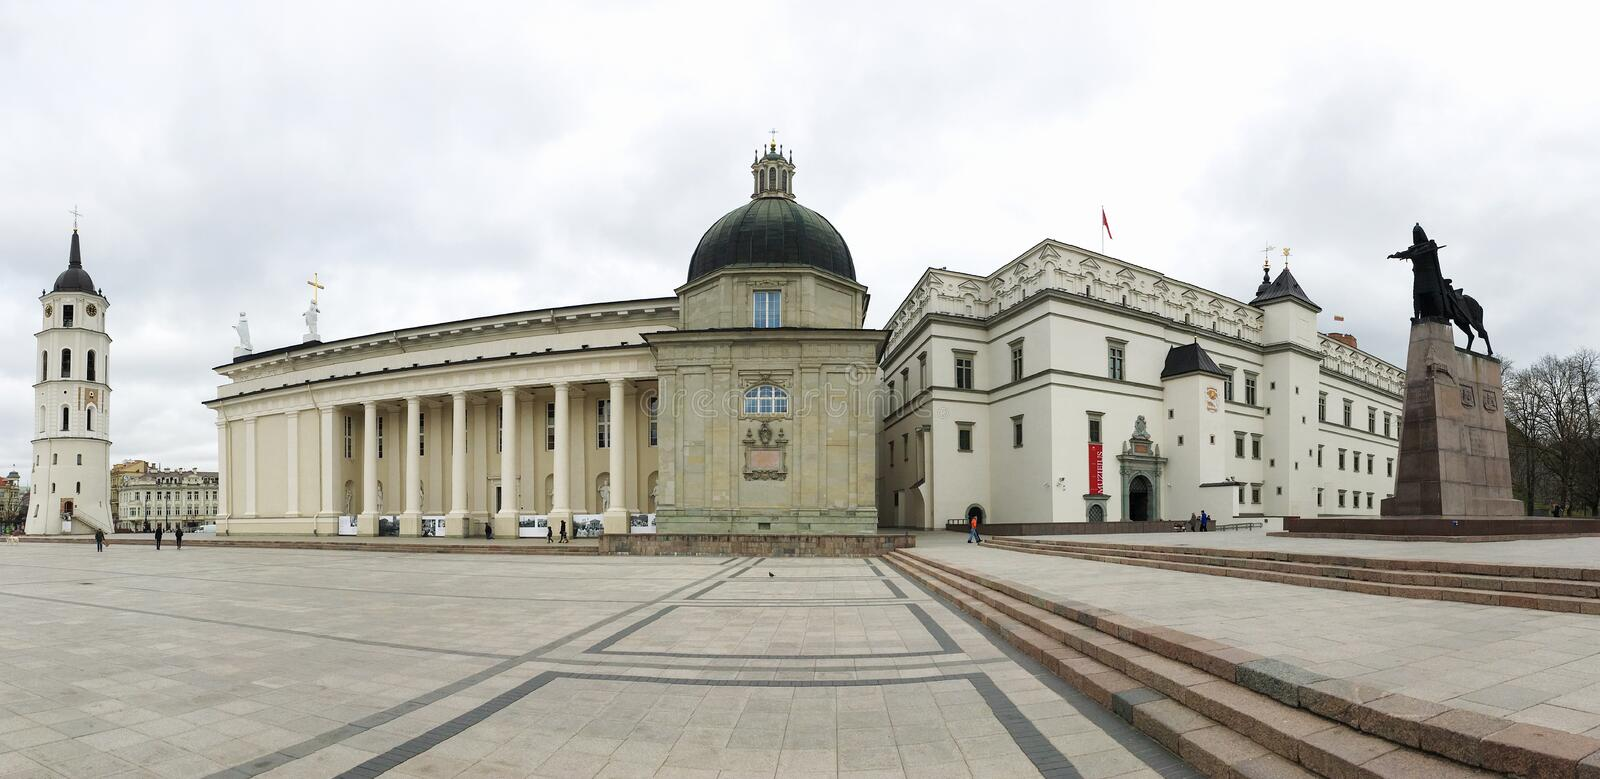 Vilnus/Lithuania/04 04 2019/ Palais des ducs grands de la Lithuanie, Vilnus, Lithuanie, panorama large photographie stock libre de droits